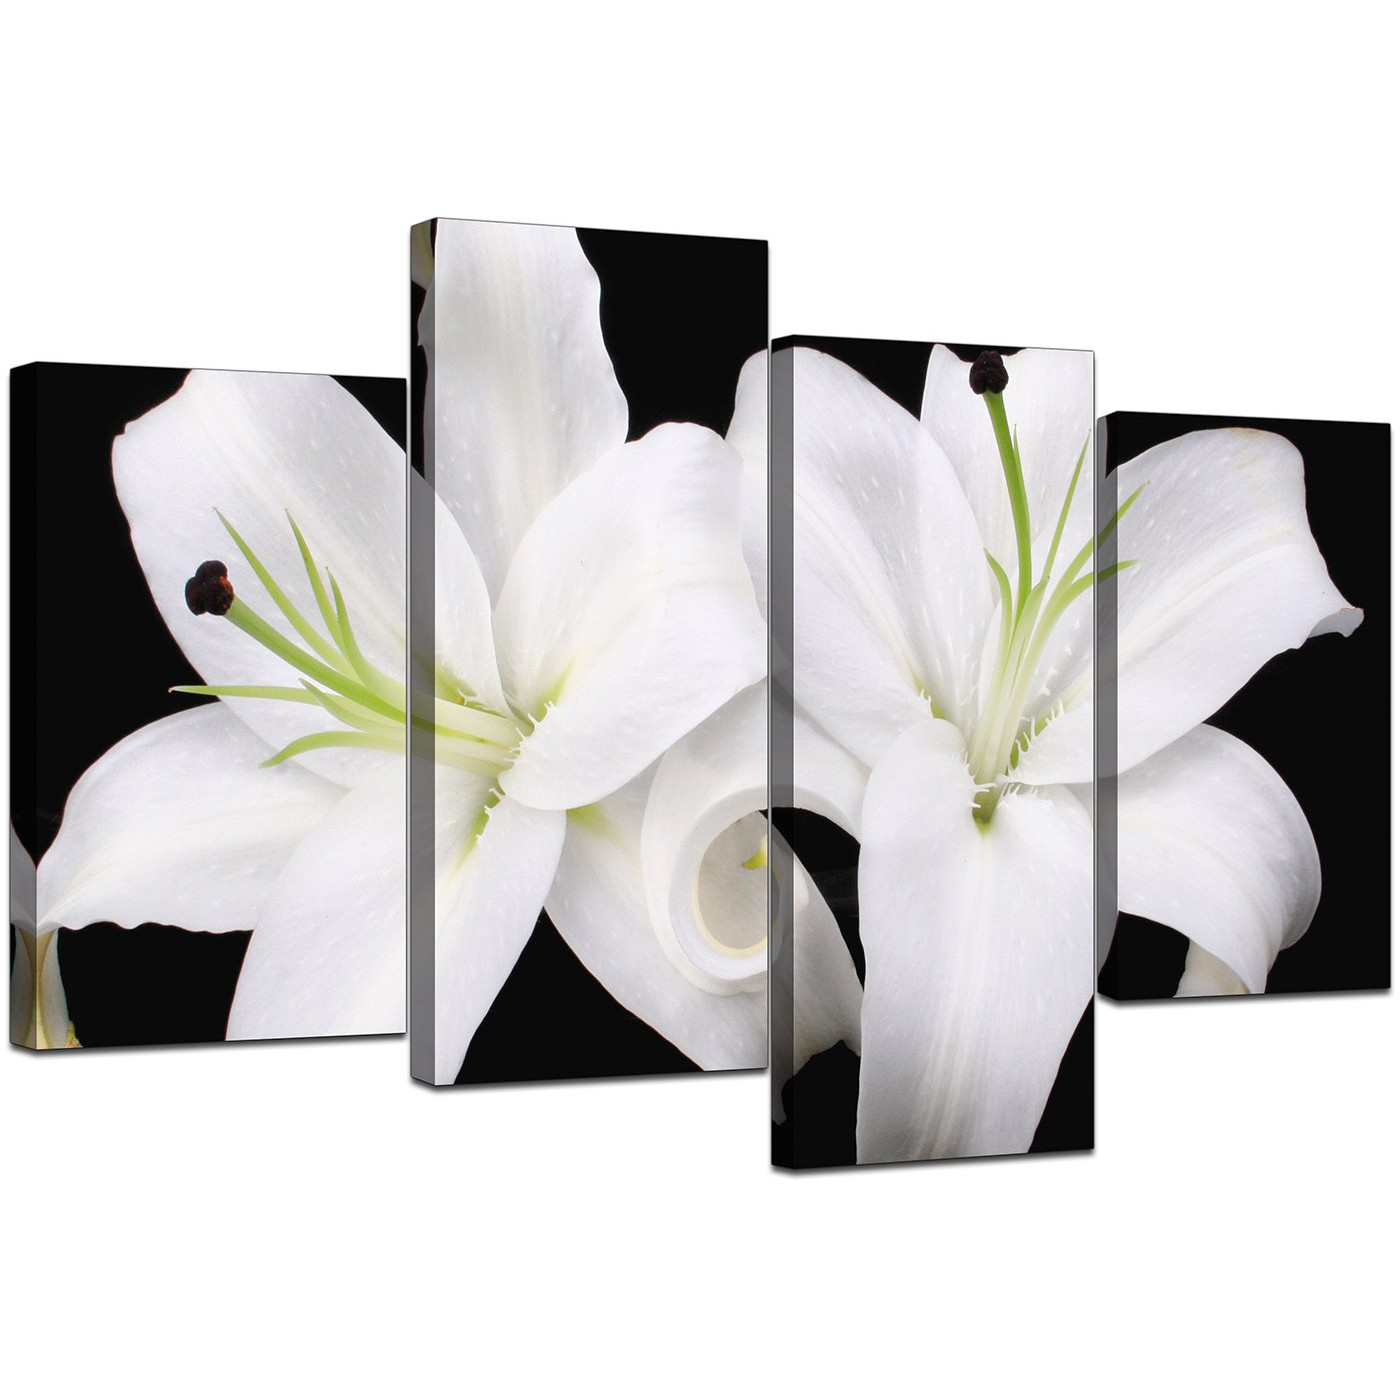 Canvas Wall Art Of Lilies In Black White For Your Living Room